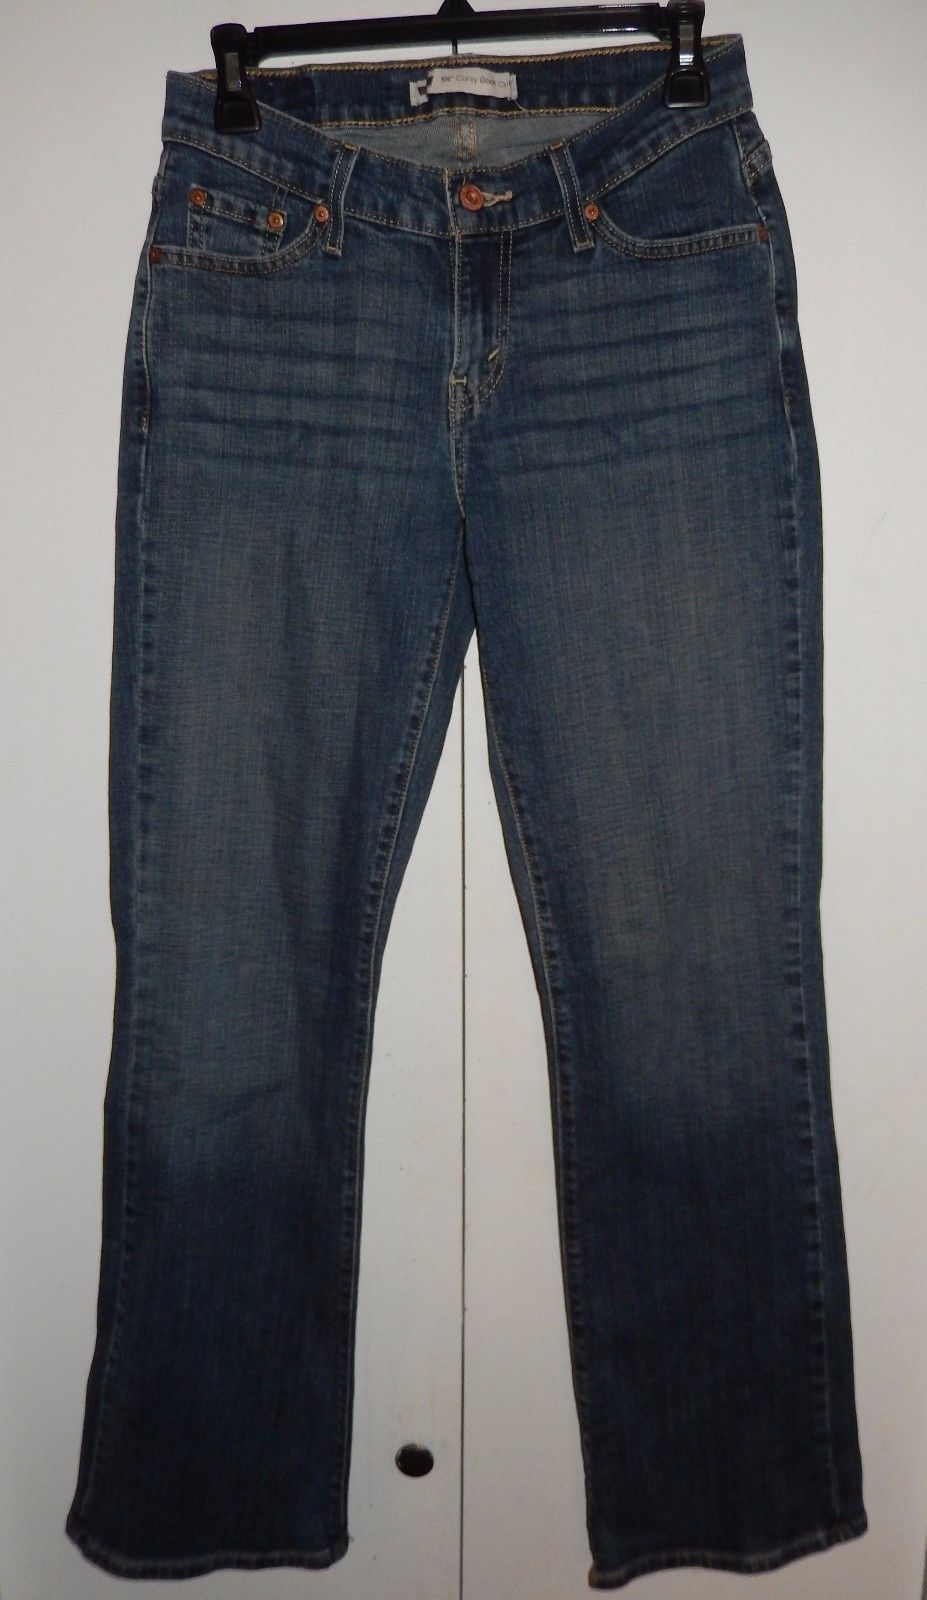 951a6fb6 Levi's 529 Curvy Boot Cut Jeans Size 8 and 50 similar items. 57